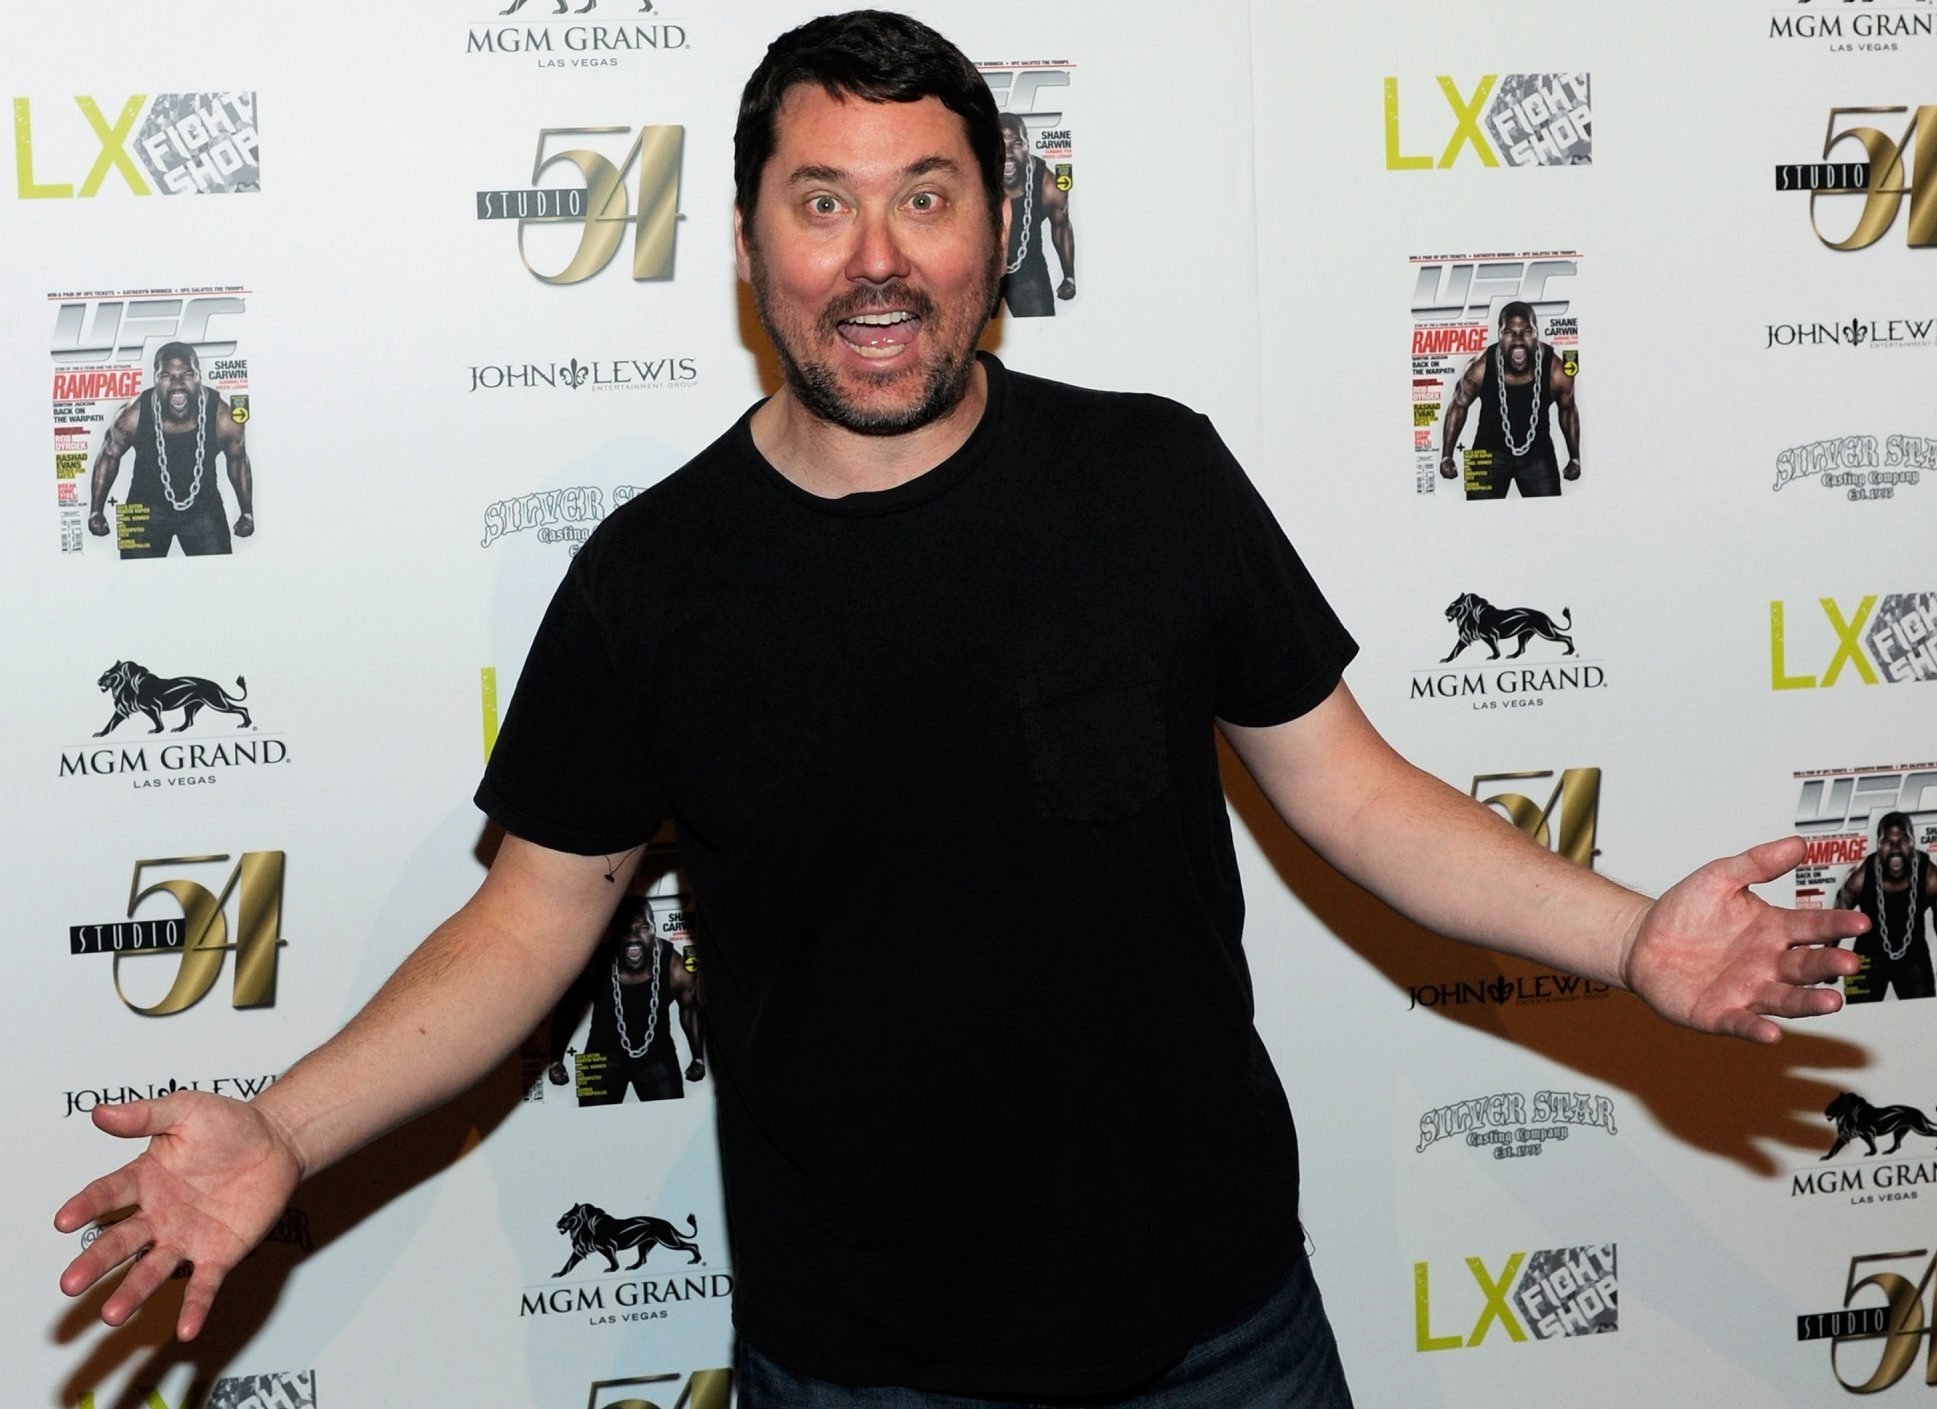 Comedian Doug Benson performs at 4:20 p.m. Oct. 4 at Helium Comedy Club. (Getty Images)